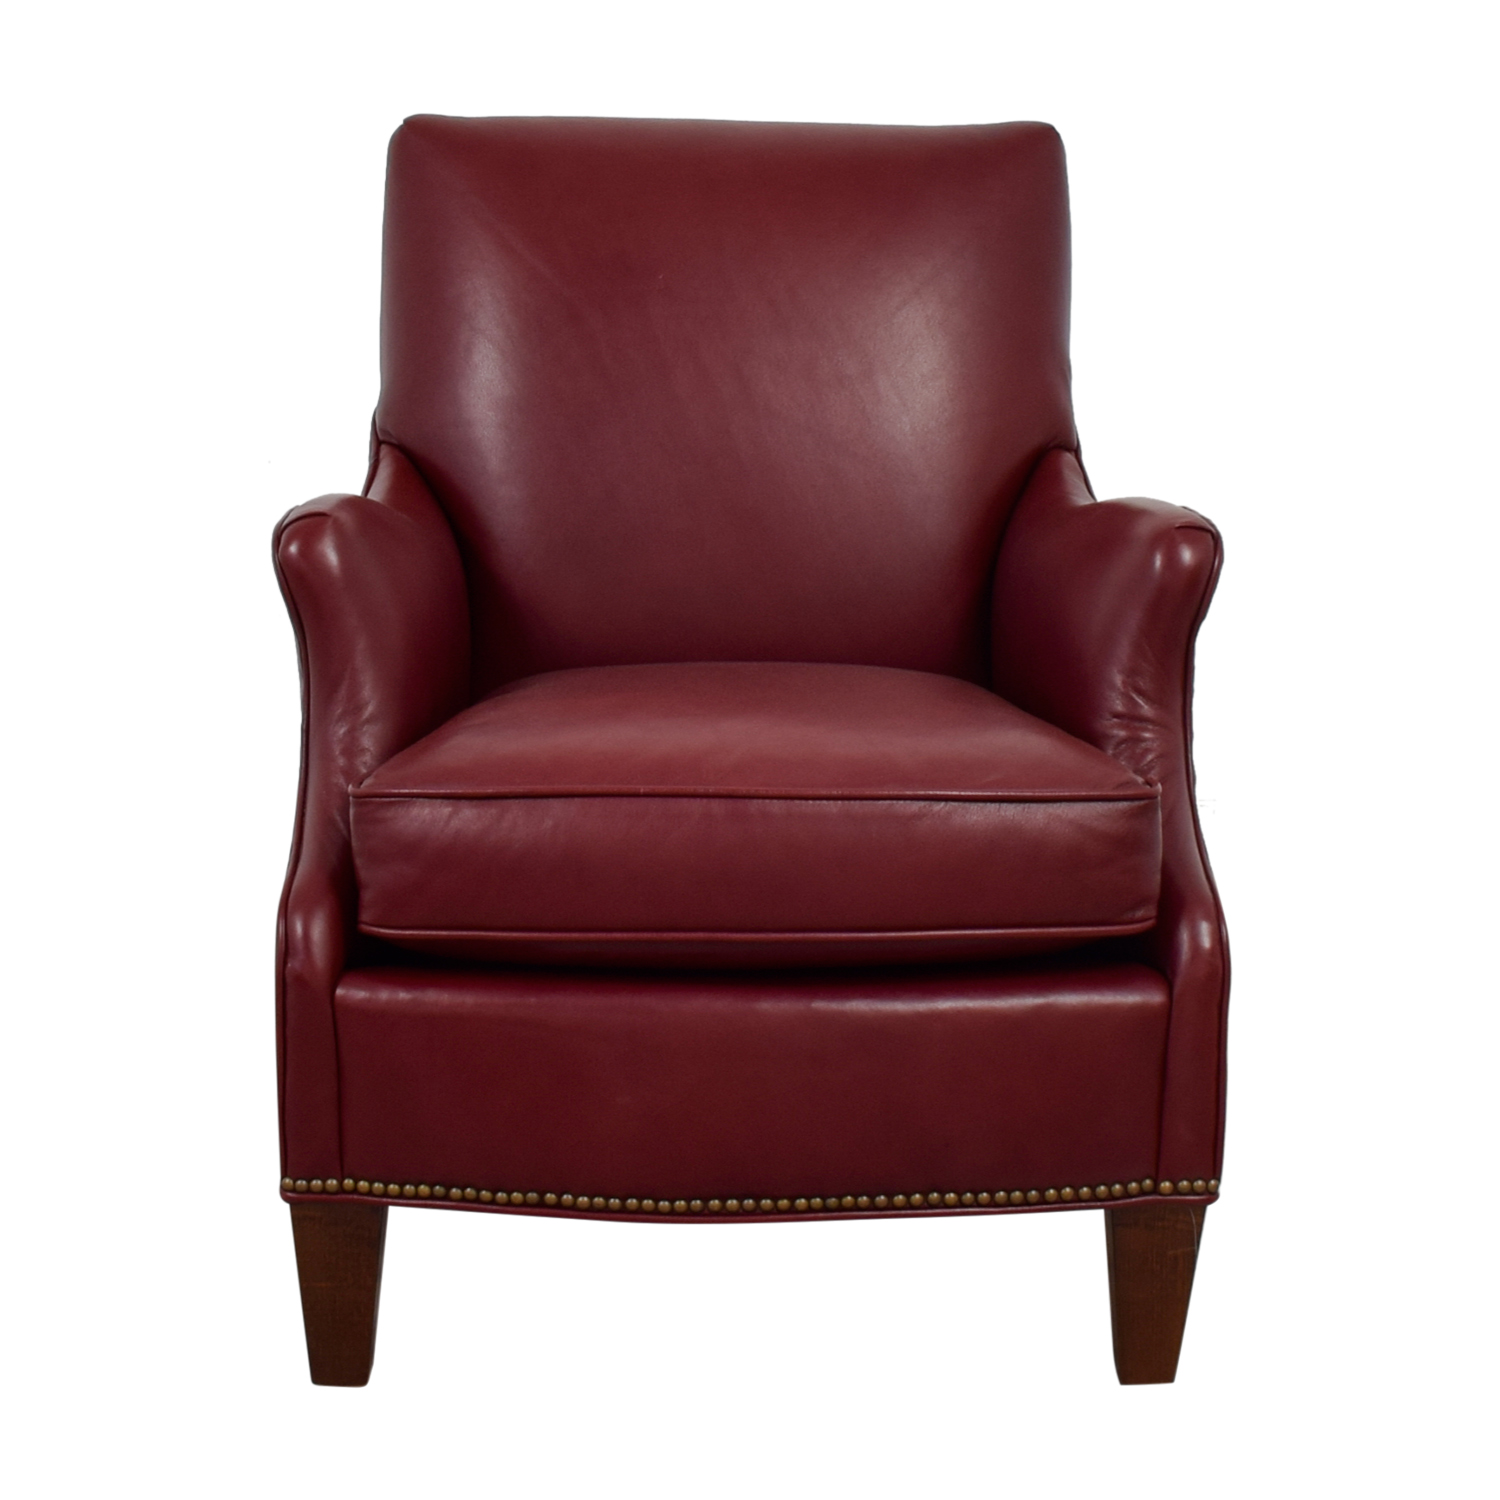 Sam Moore Sam Moore Red Leather Accent Chair Chairs ...